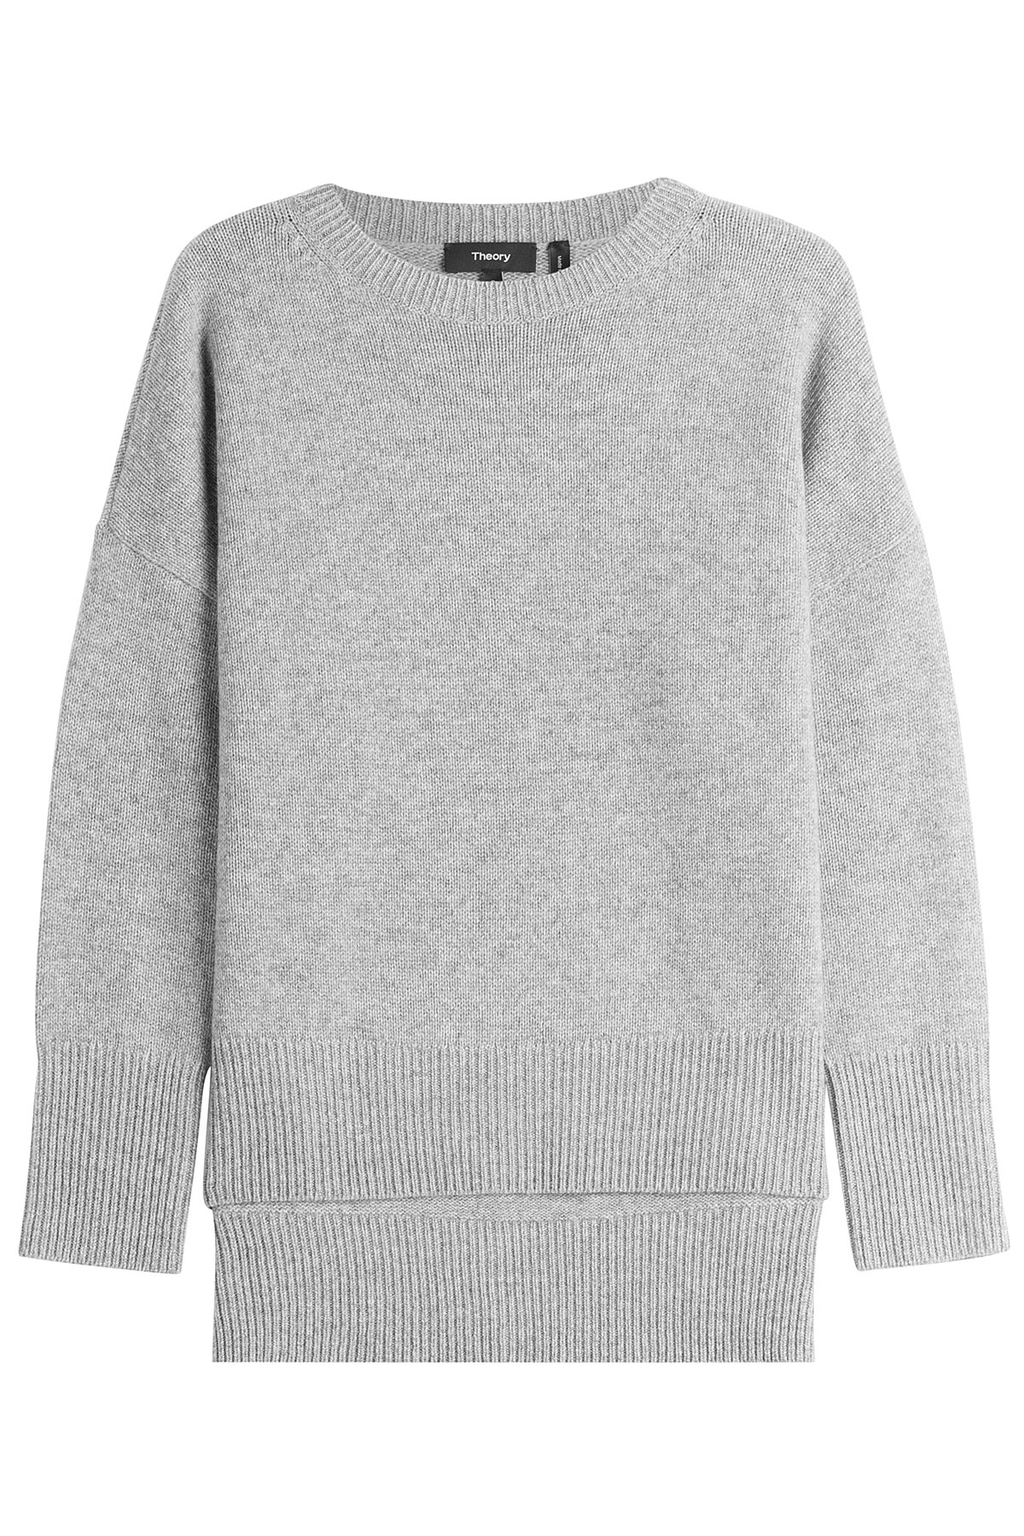 Cashmere Pullover Grey - pattern: plain; length: below the bottom; style: standard; predominant colour: light grey; occasions: casual, creative work; fit: loose; neckline: crew; fibres: cashmere - 100%; sleeve length: long sleeve; sleeve style: standard; texture group: knits/crochet; pattern type: knitted - other; wardrobe: investment; season: a/w 2016